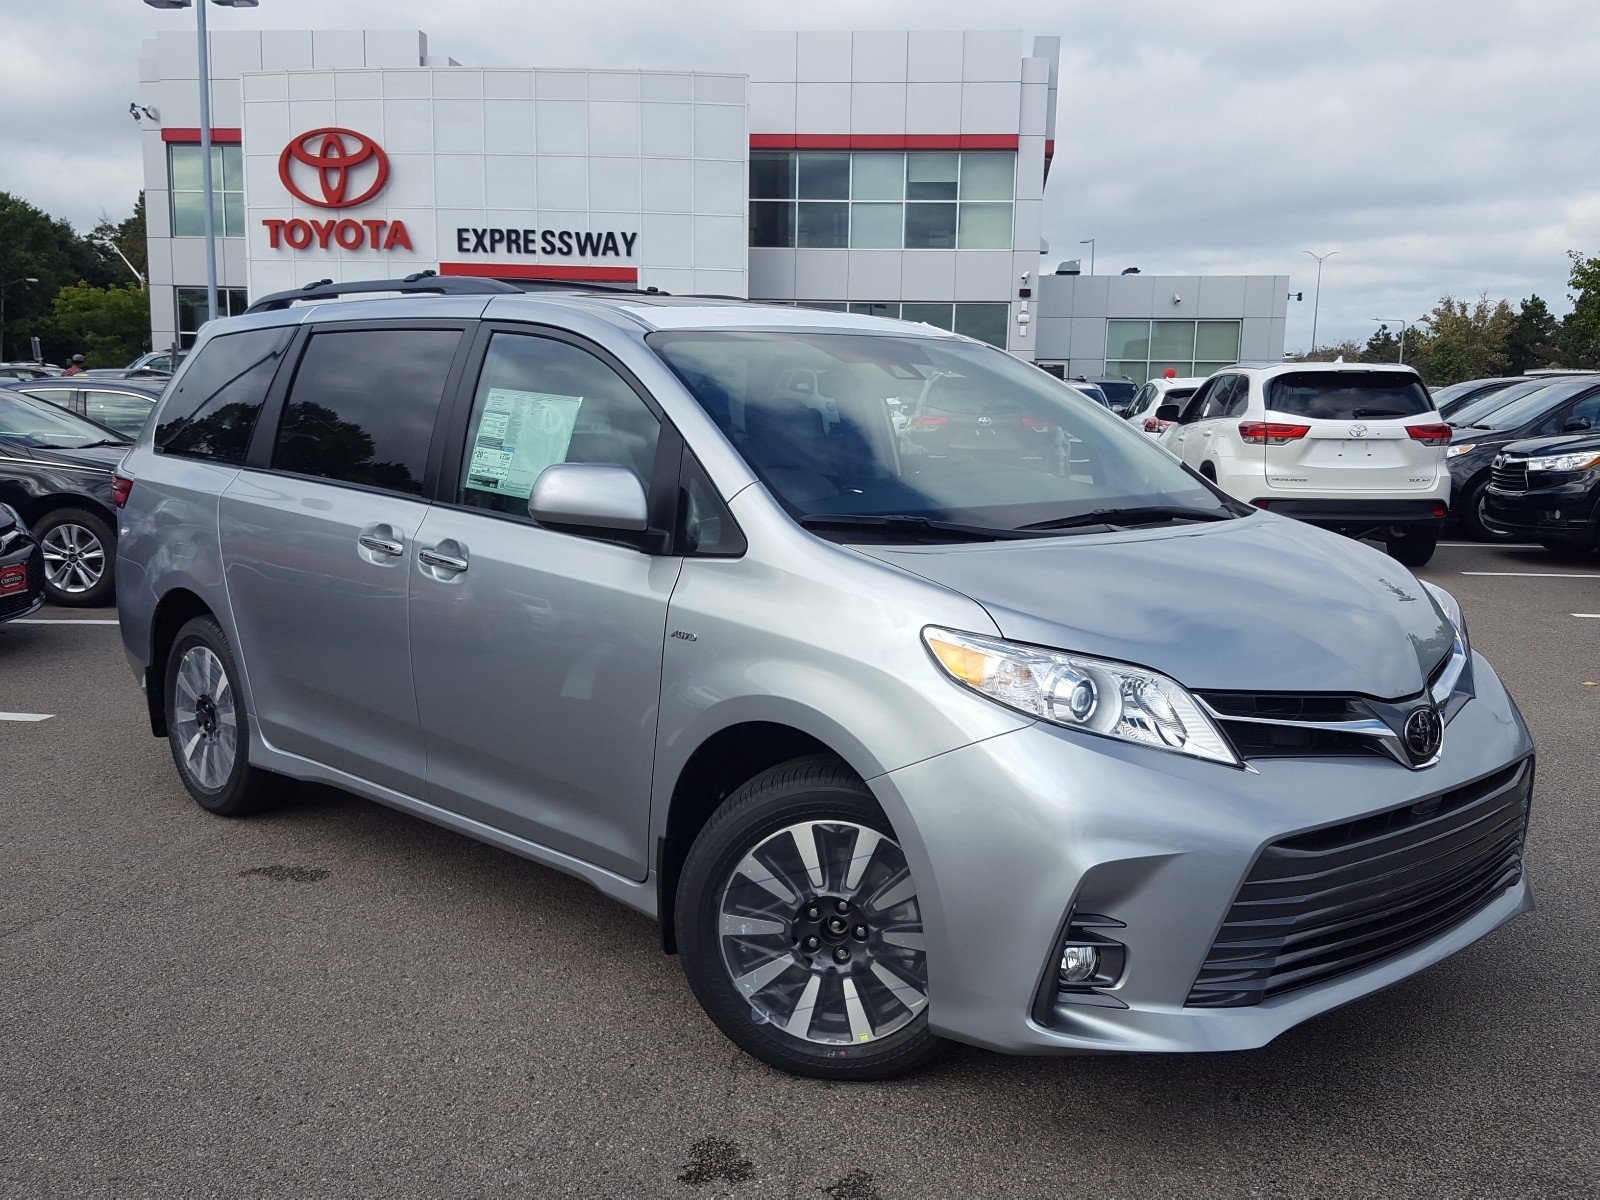 Toyota Sienna Service Manual: ABS Control System Malfunction